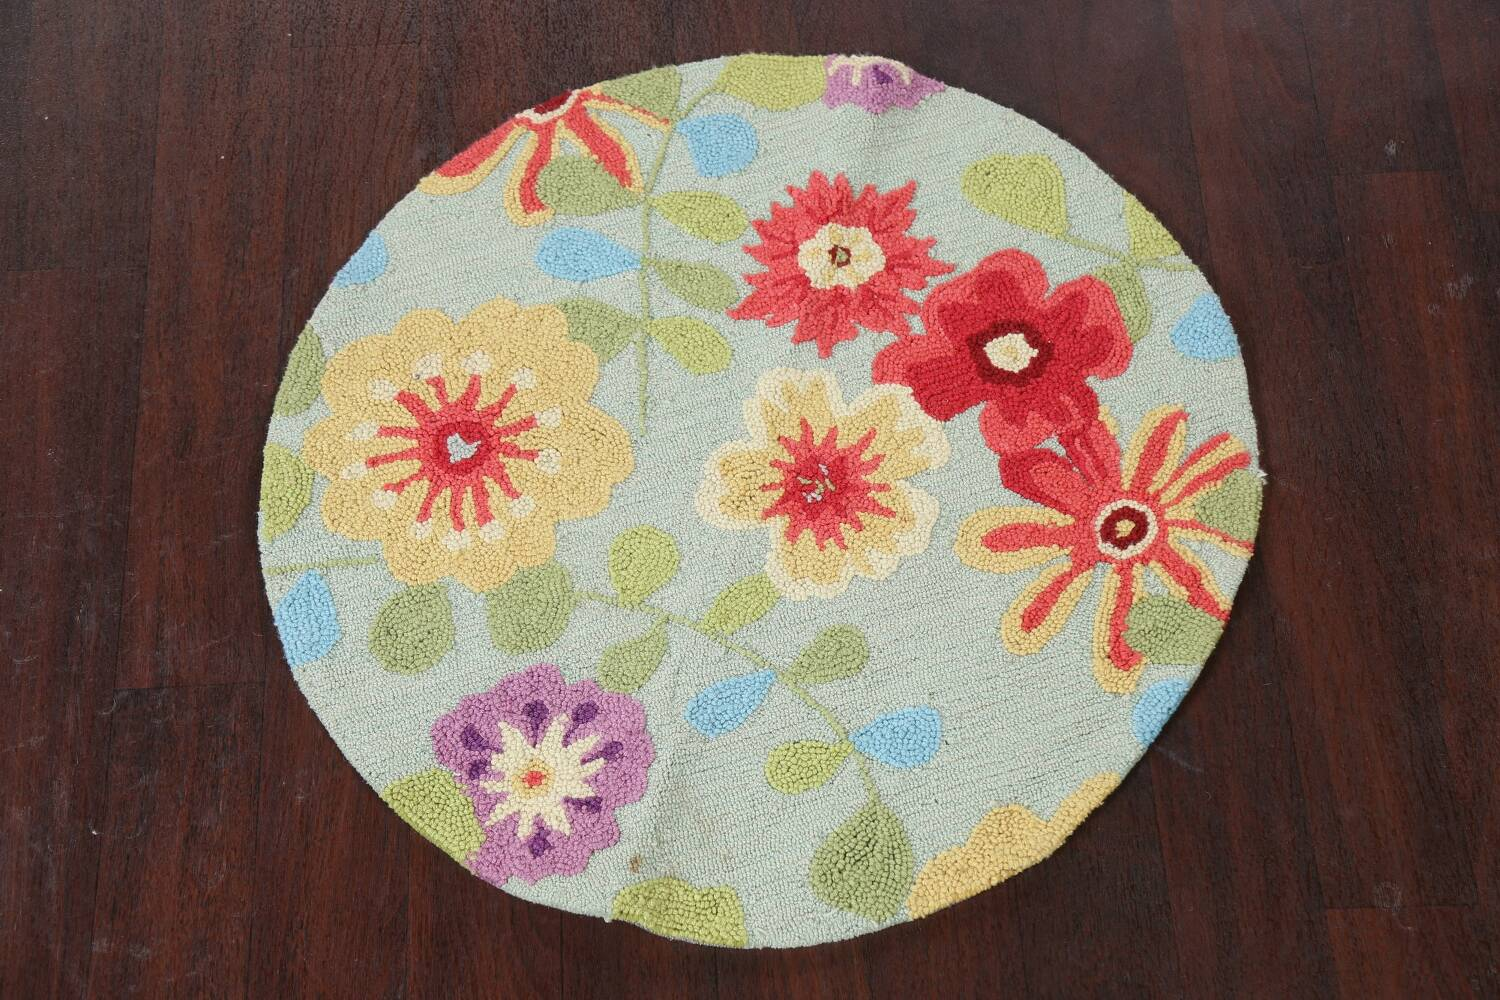 Contemporary Abstract Round Rug 3x3 image 2